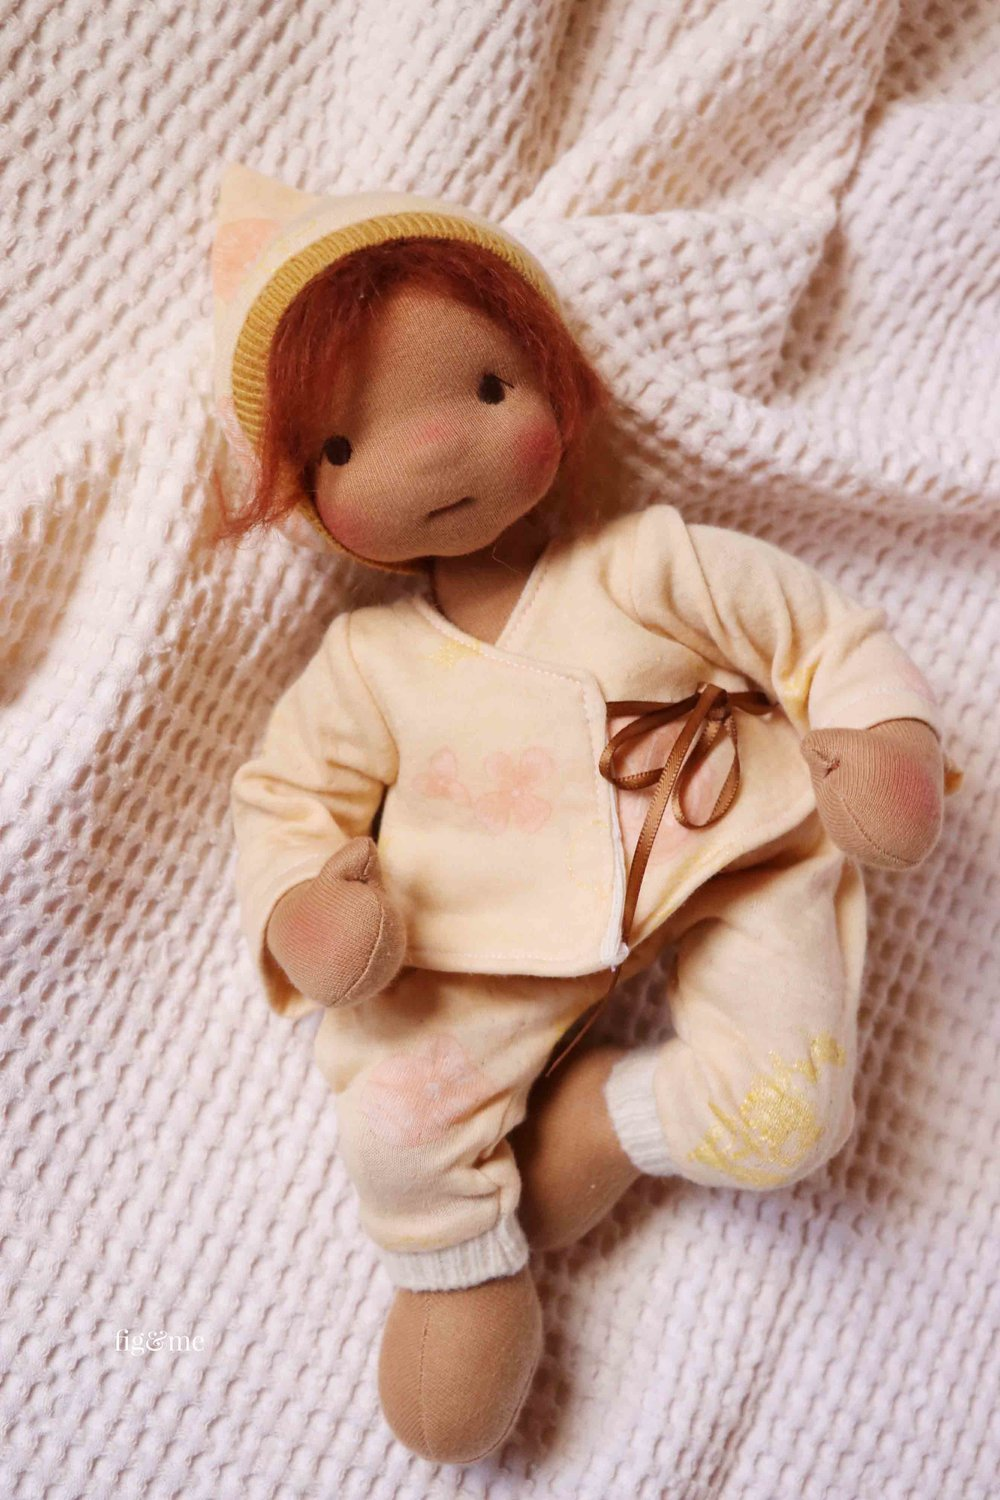 Baby Kasja, a baby cloth doll by Fig and Me.